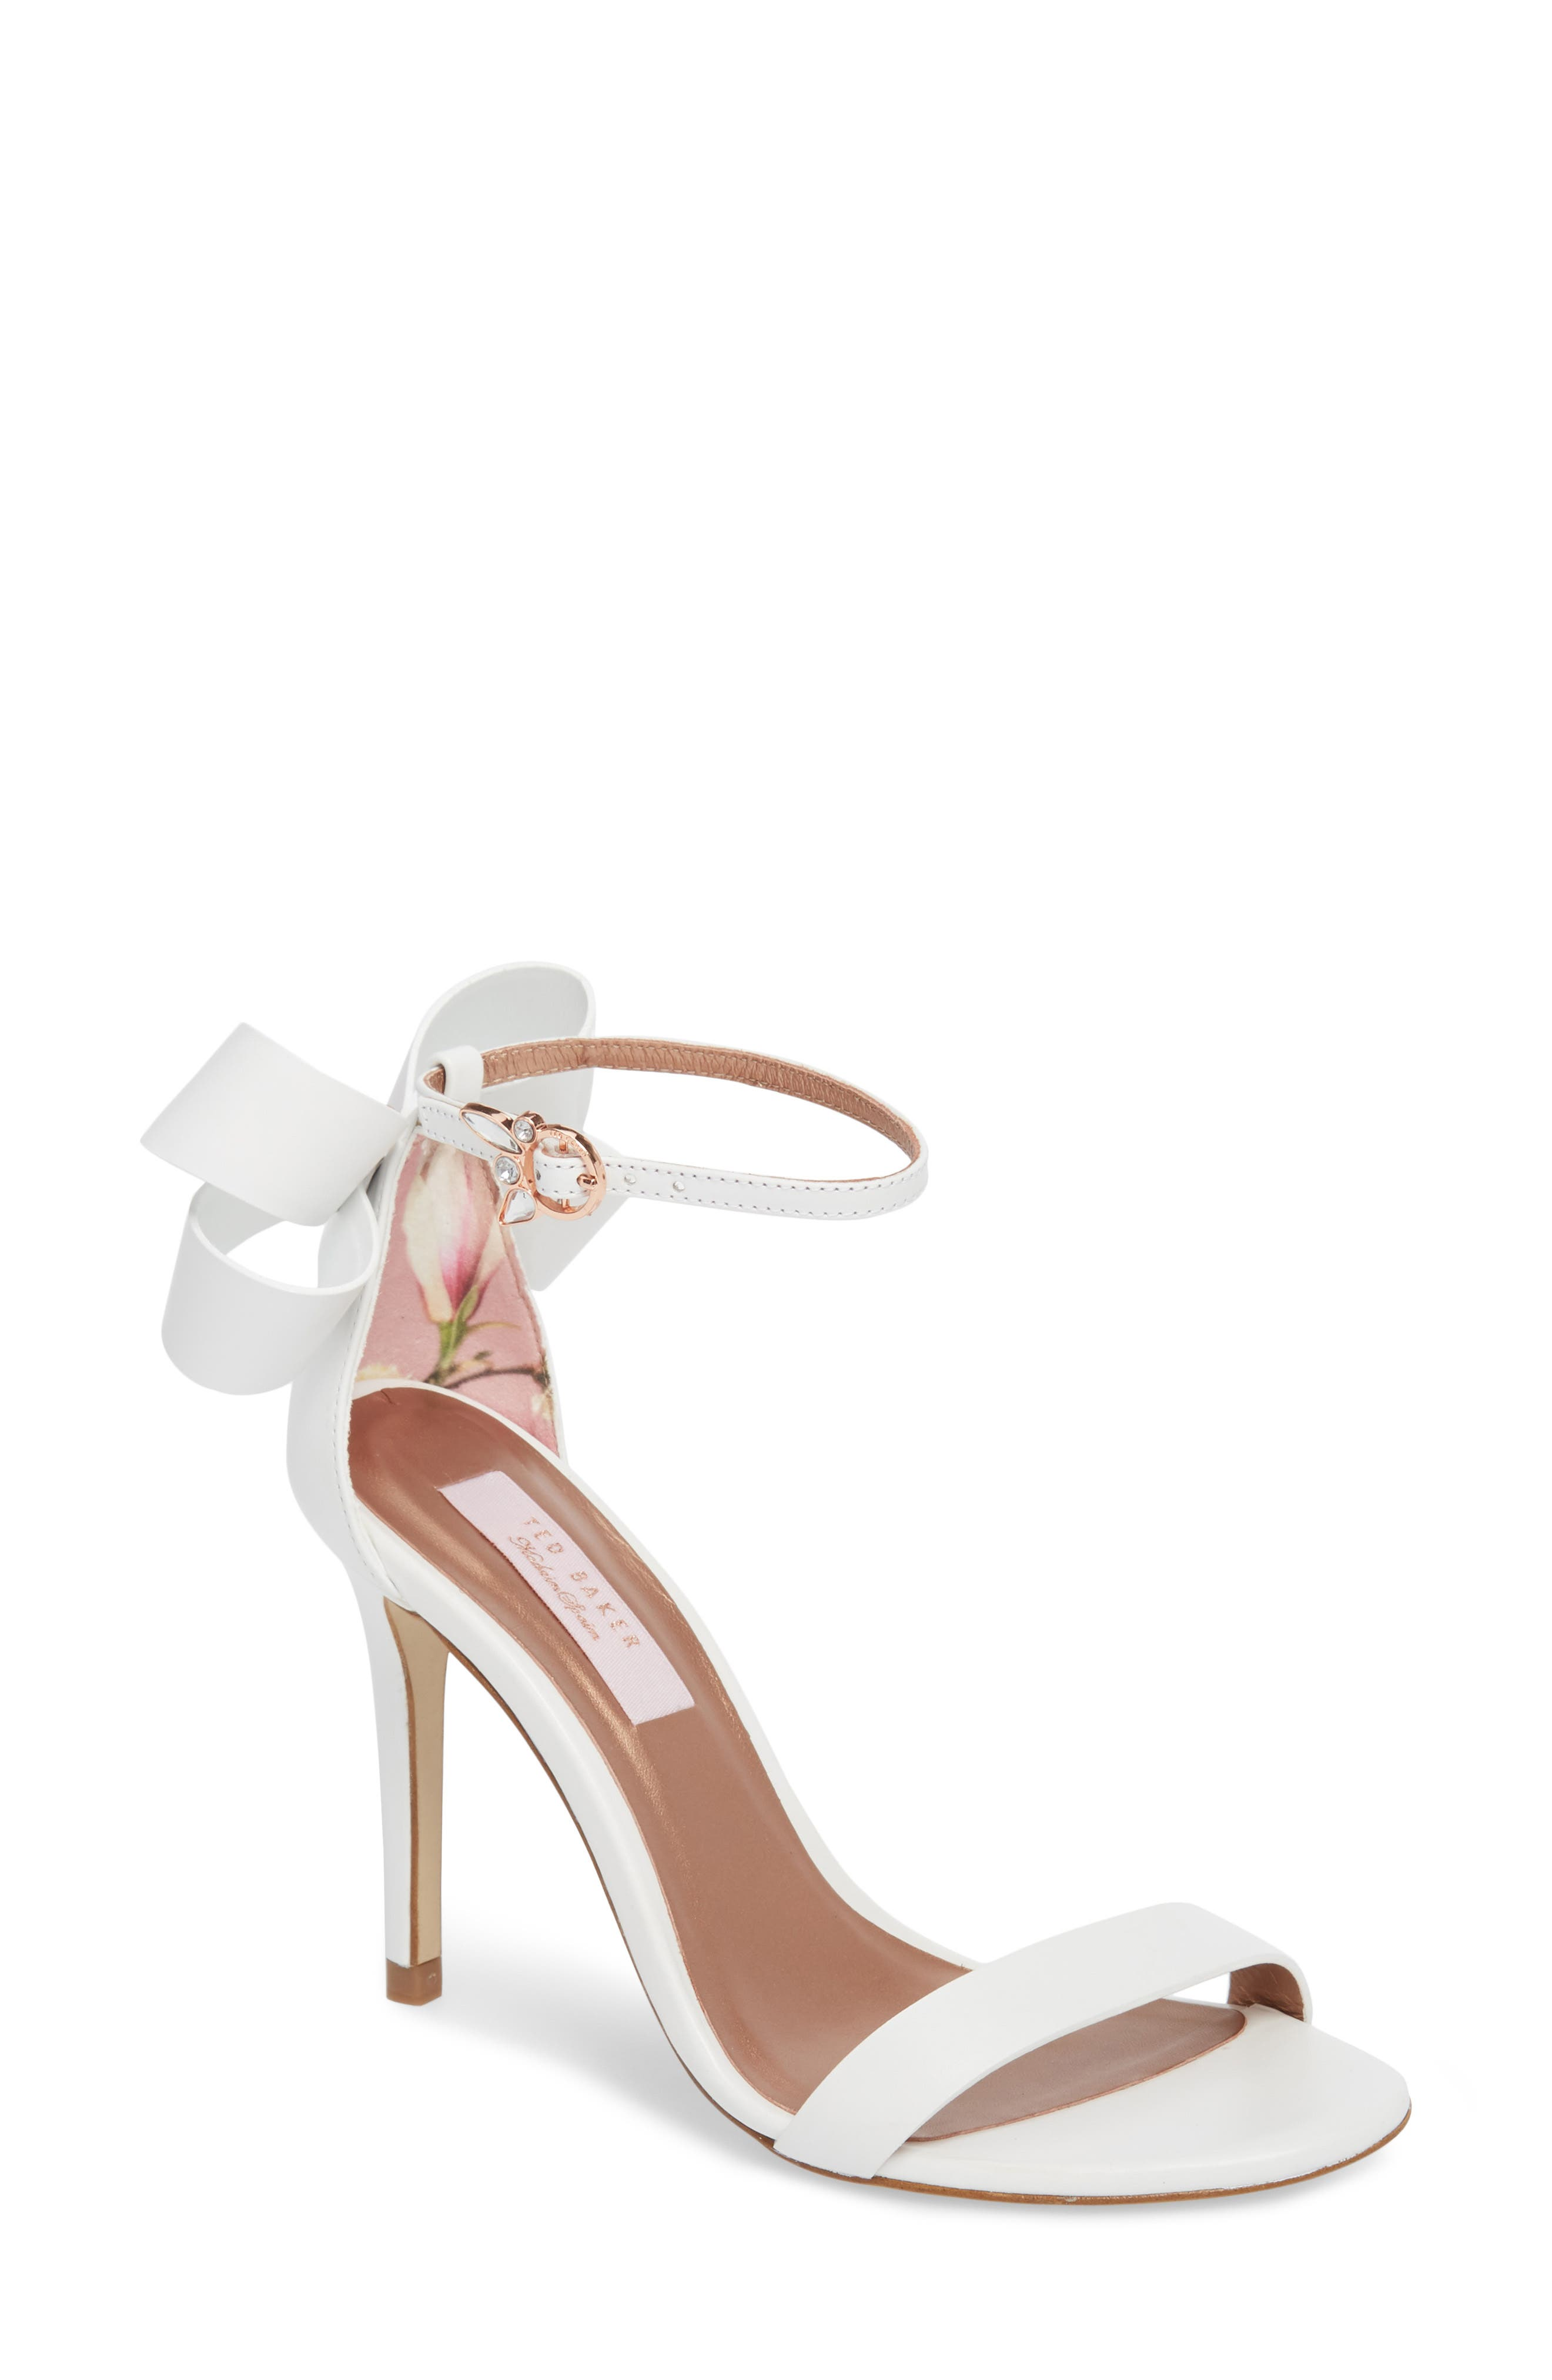 Ankle Strap Sandal,                         Main,                         color, White Leather